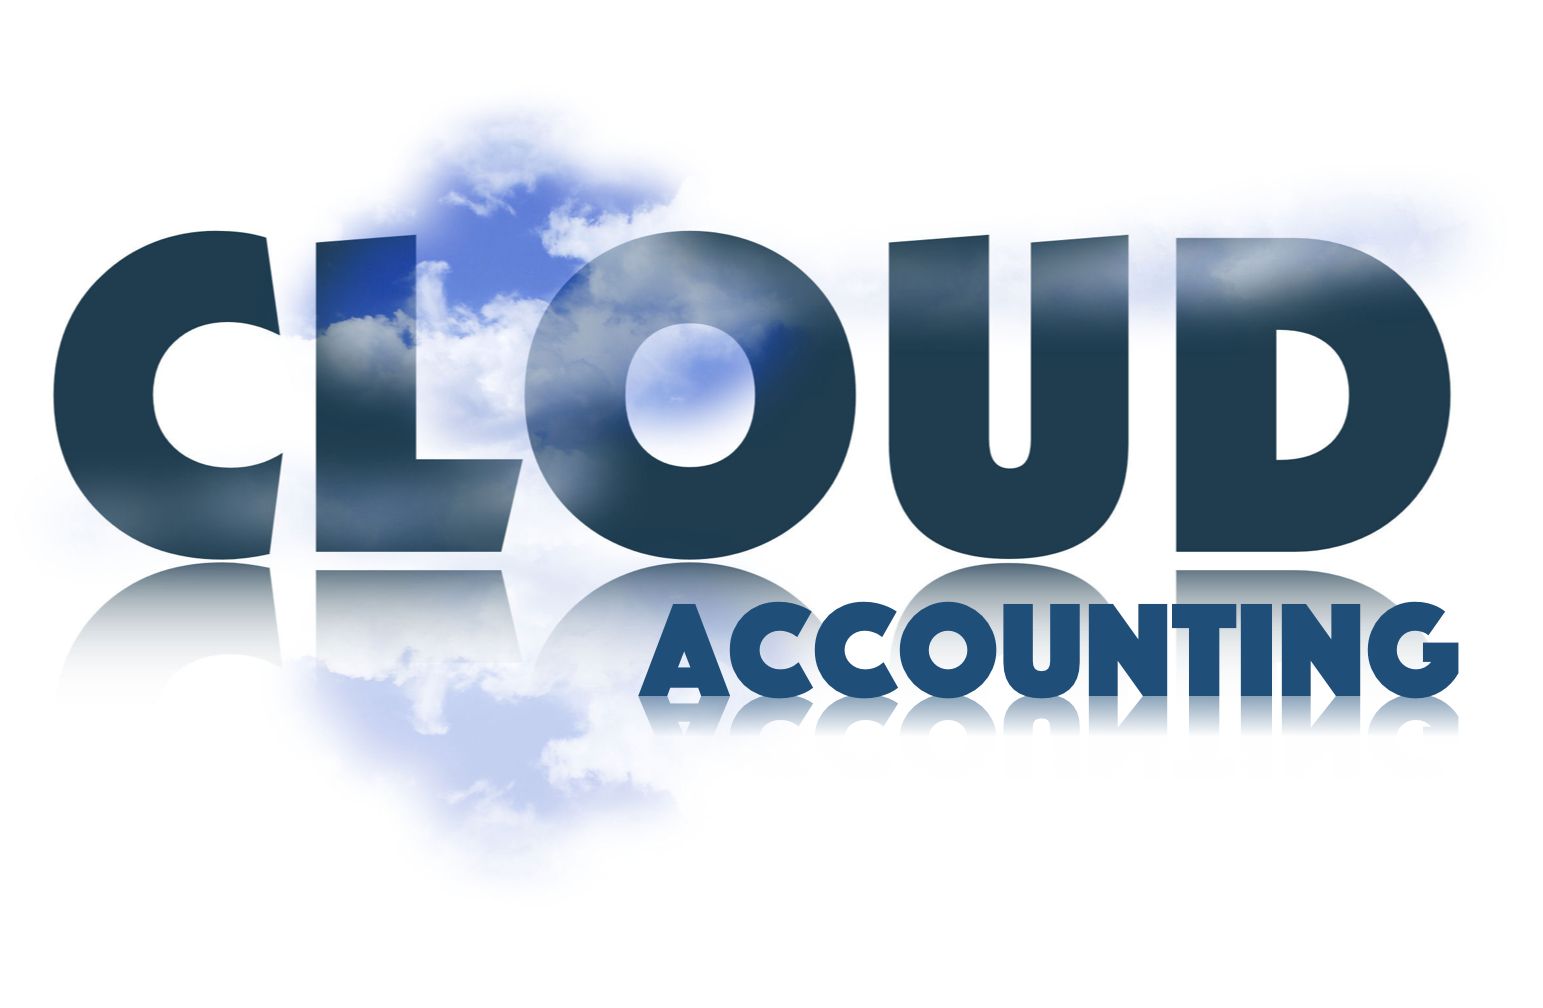 Cloud Accounting Support Services - Tamworth, Staffordshire B77 3QT - 01827 780550 | ShowMeLocal.com